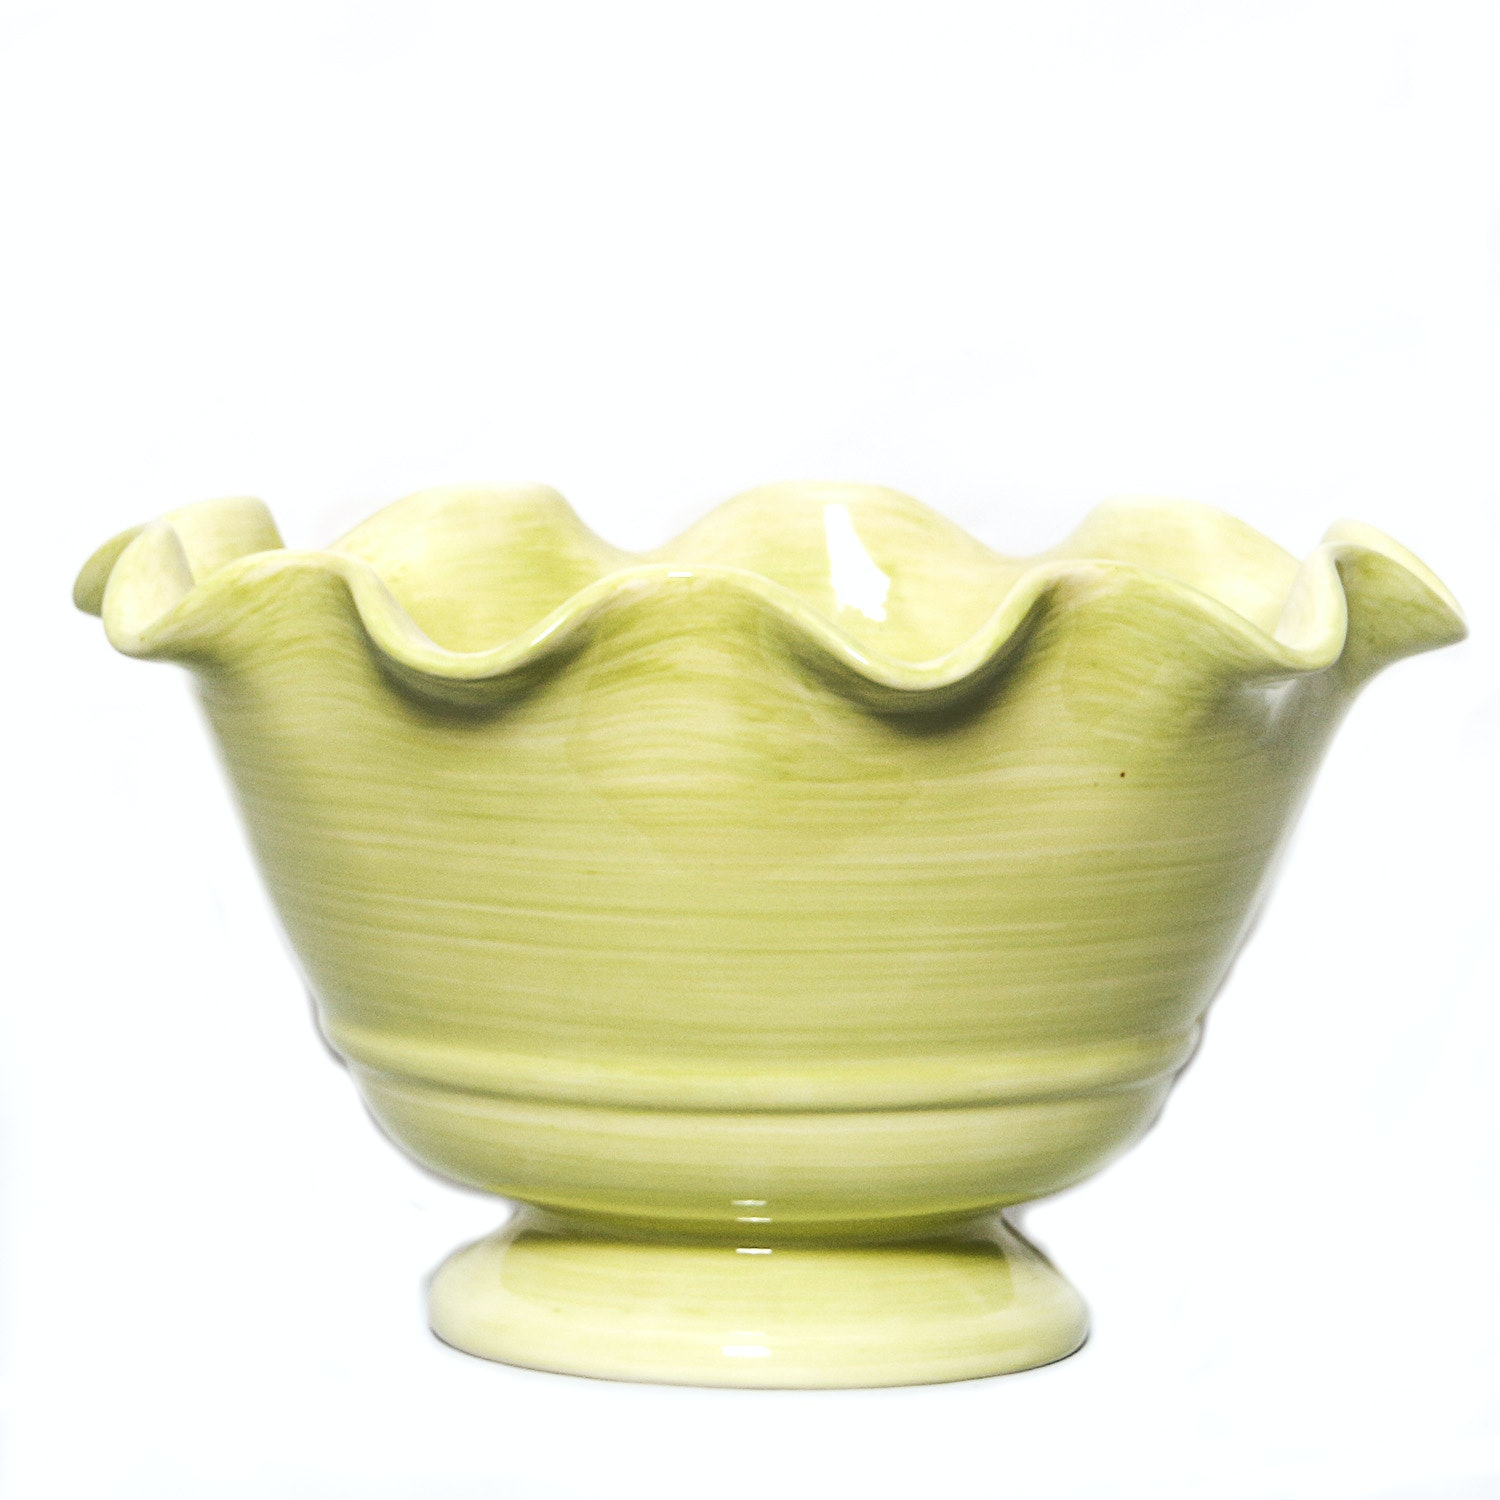 Crate & Barrel Scalloped Serving Bowl